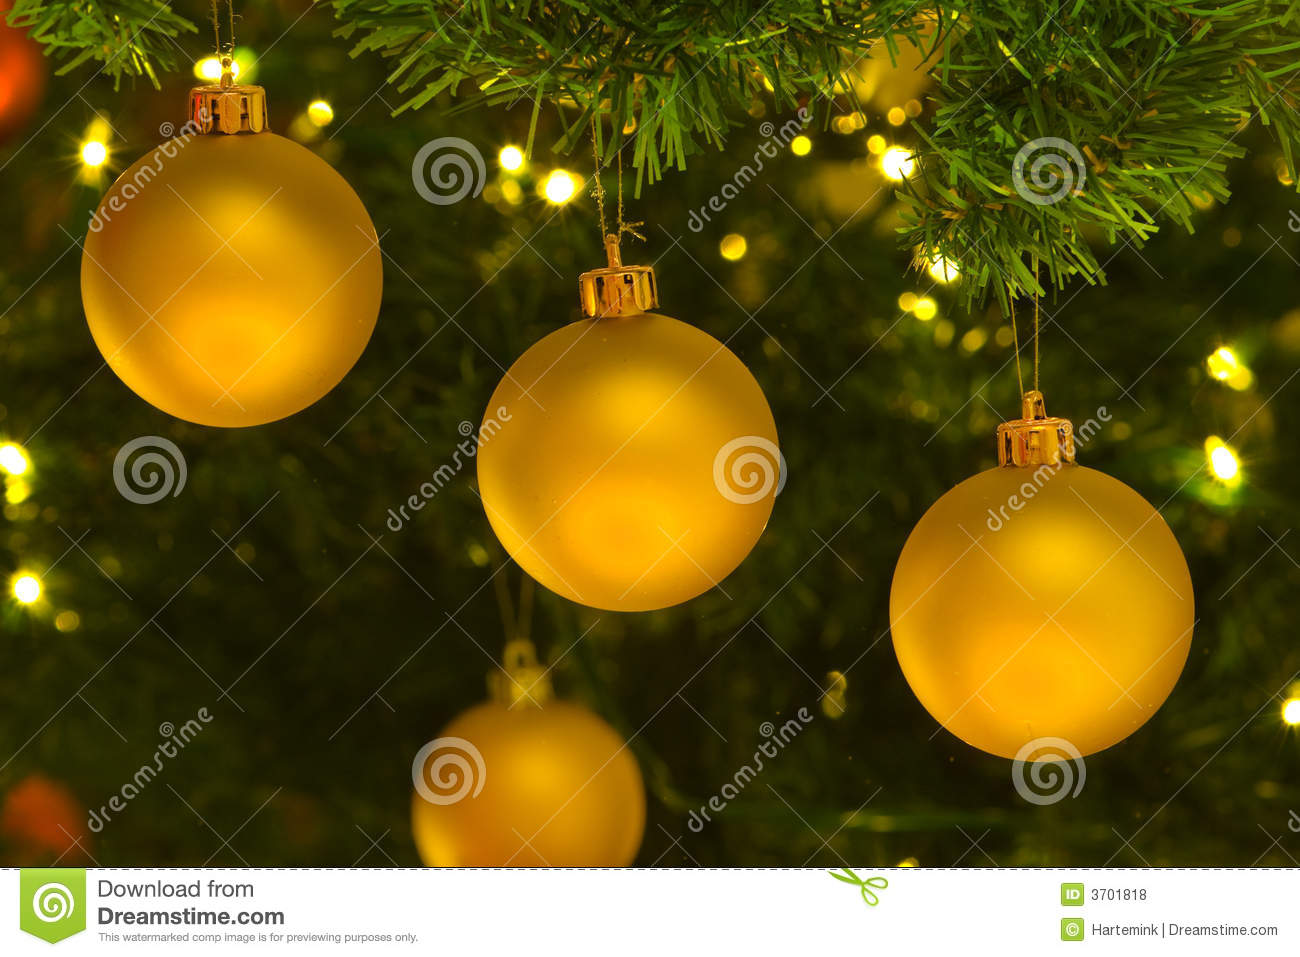 yellow christmas tree decorations - Yellow Christmas Decorations